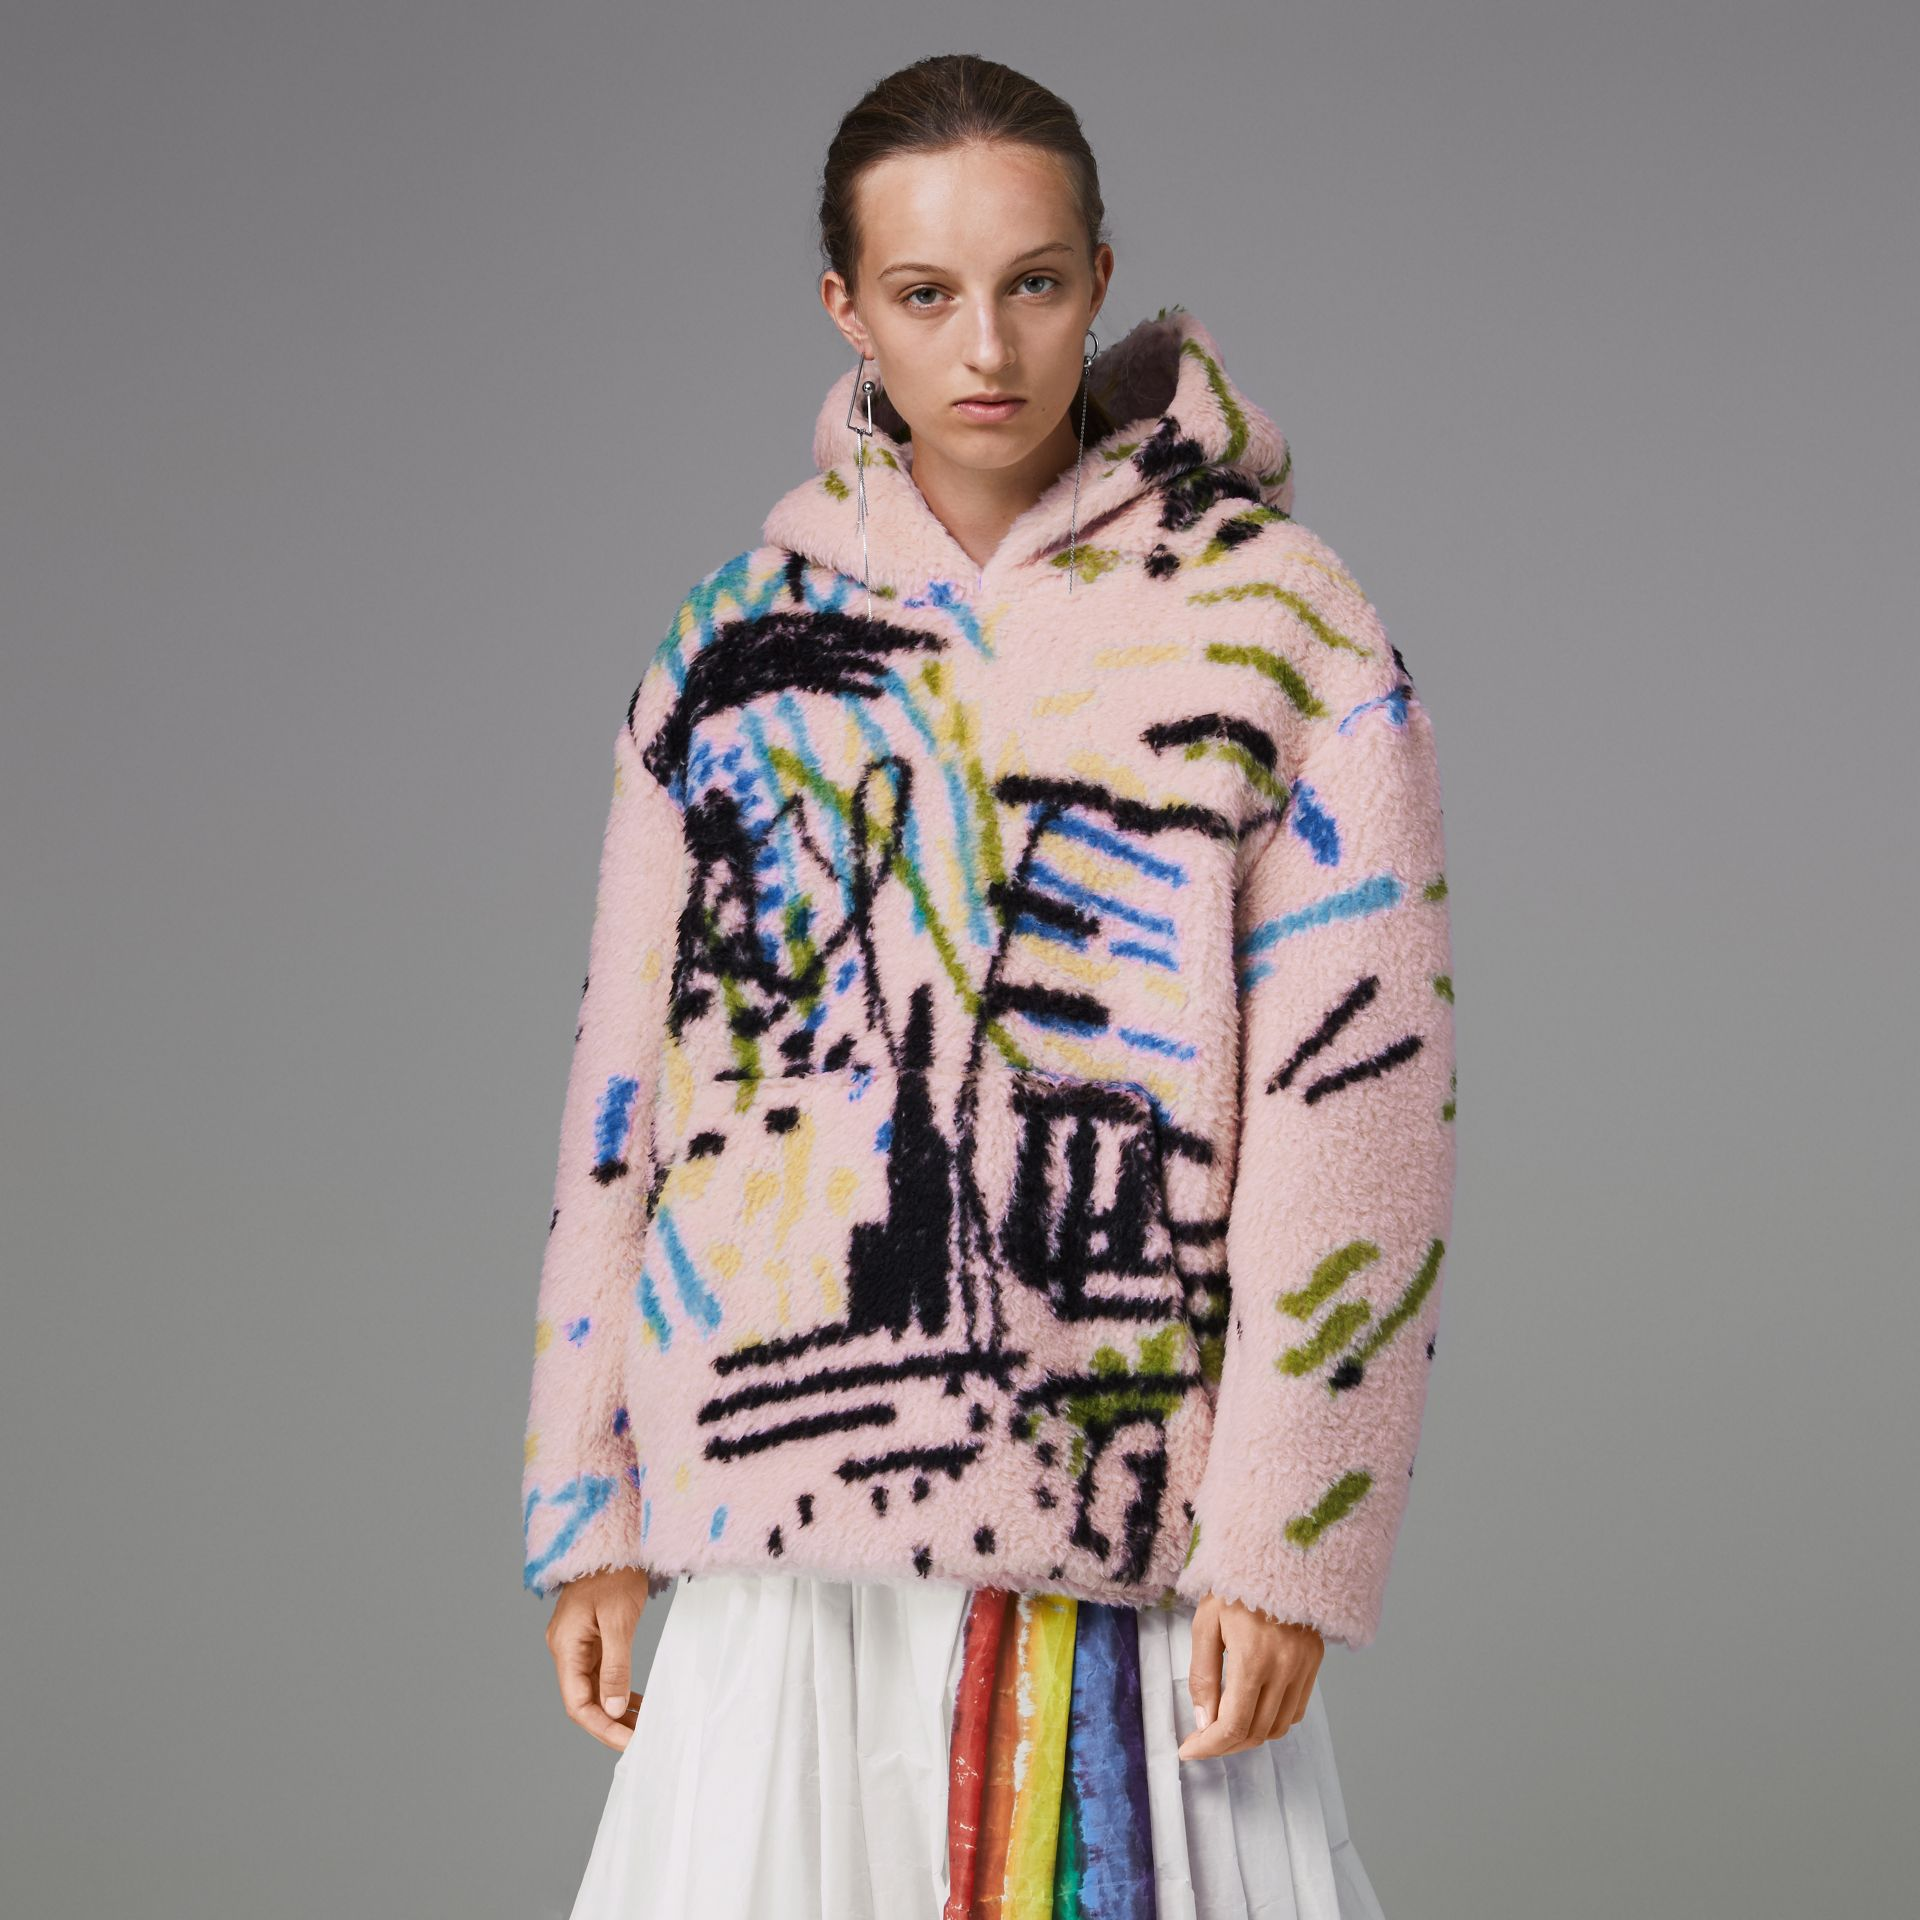 Graffiti Print Cashmere Silk Fleece Hoodie in Pale Rose - Women | Burberry Hong Kong - gallery image 4